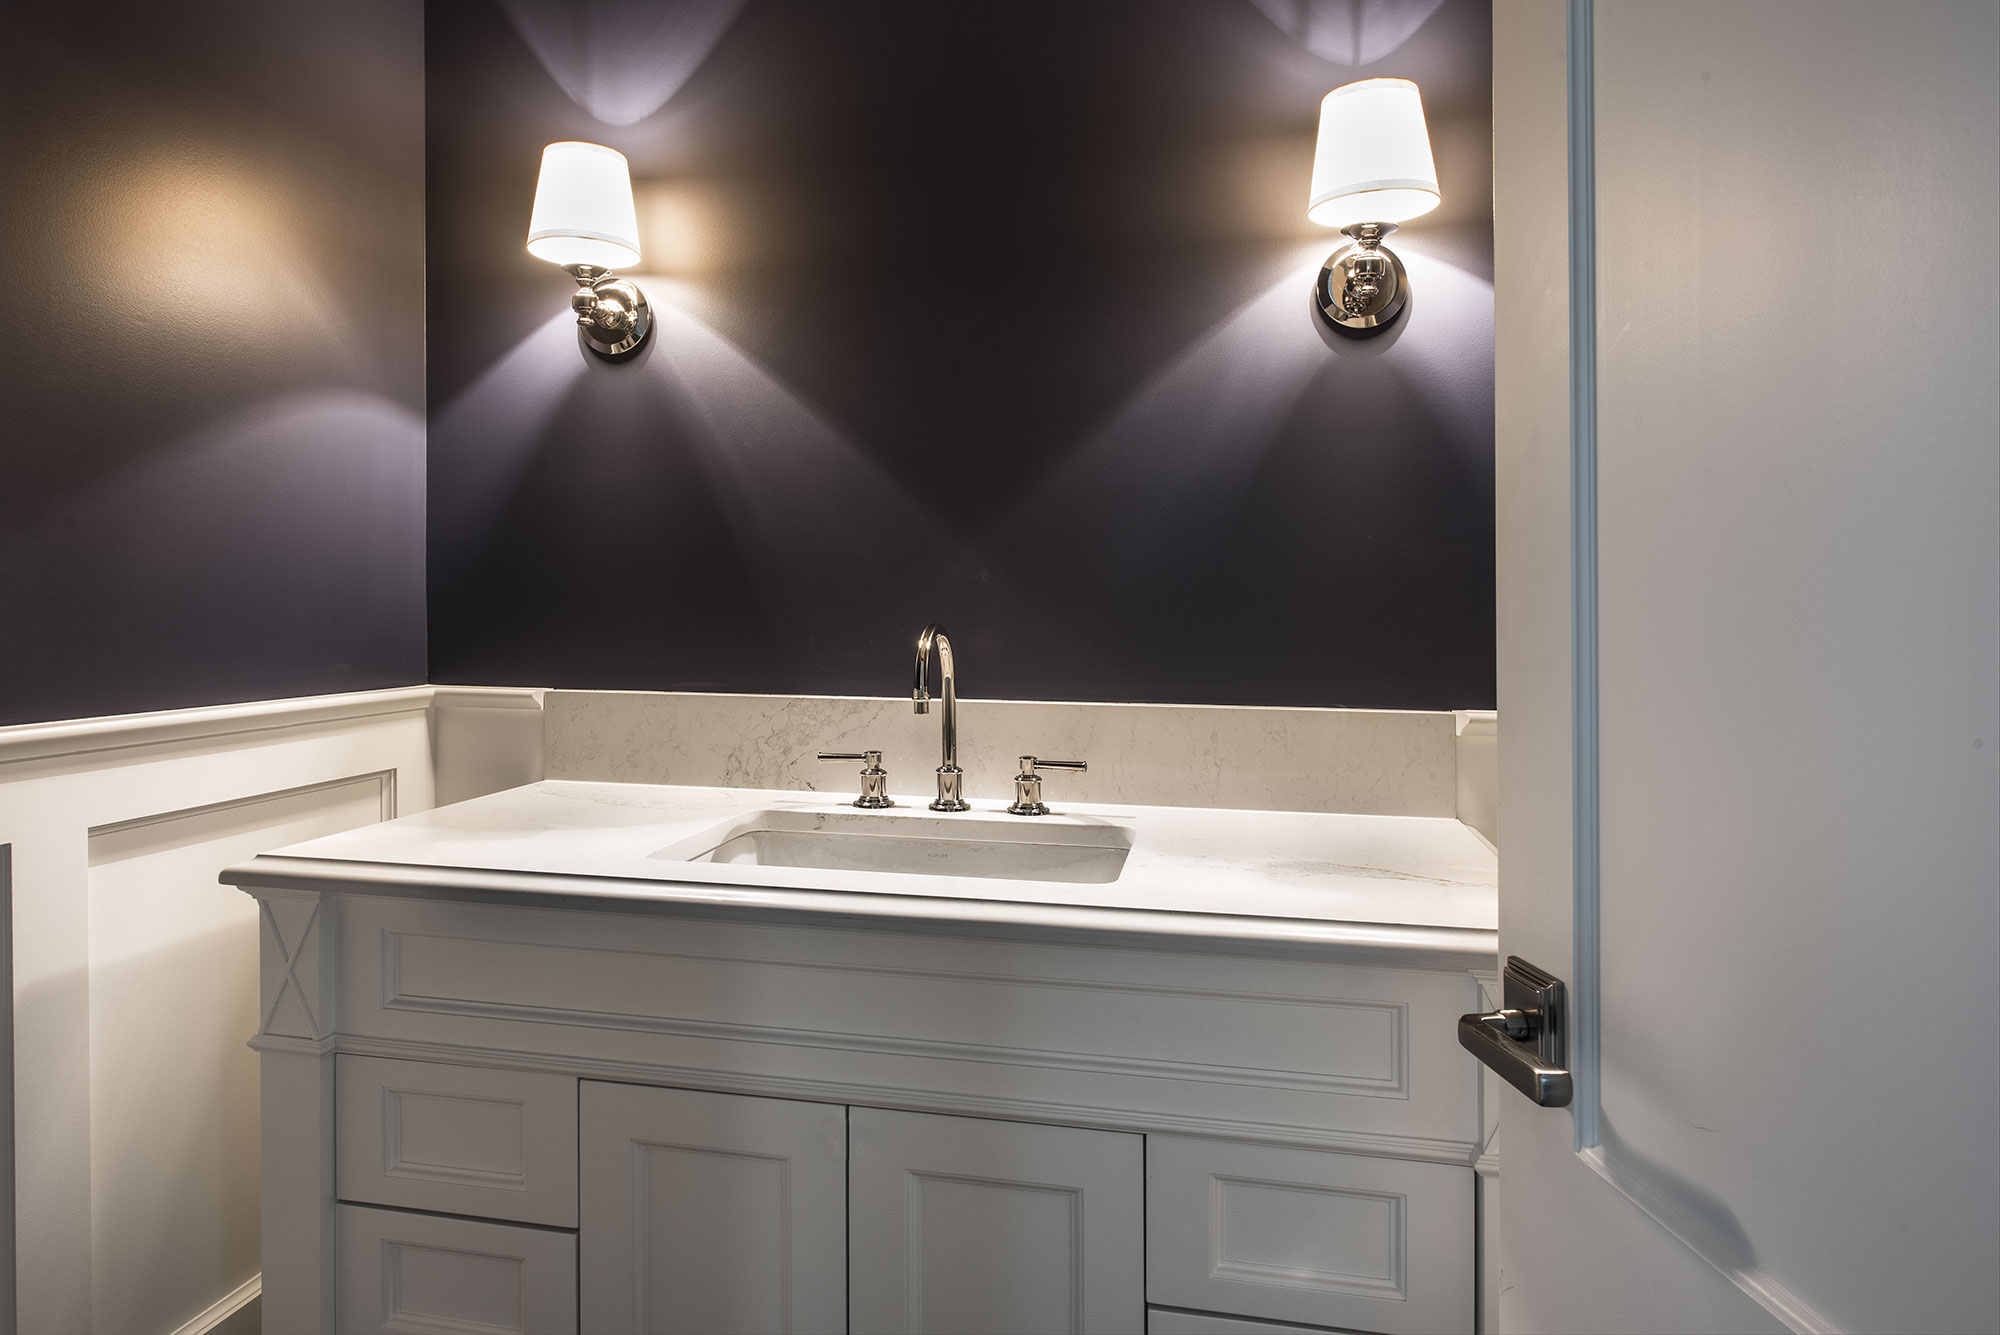 Bathroom vanity chicago il tidycity cleaning services in for Bathroom vanities chicago suburbs